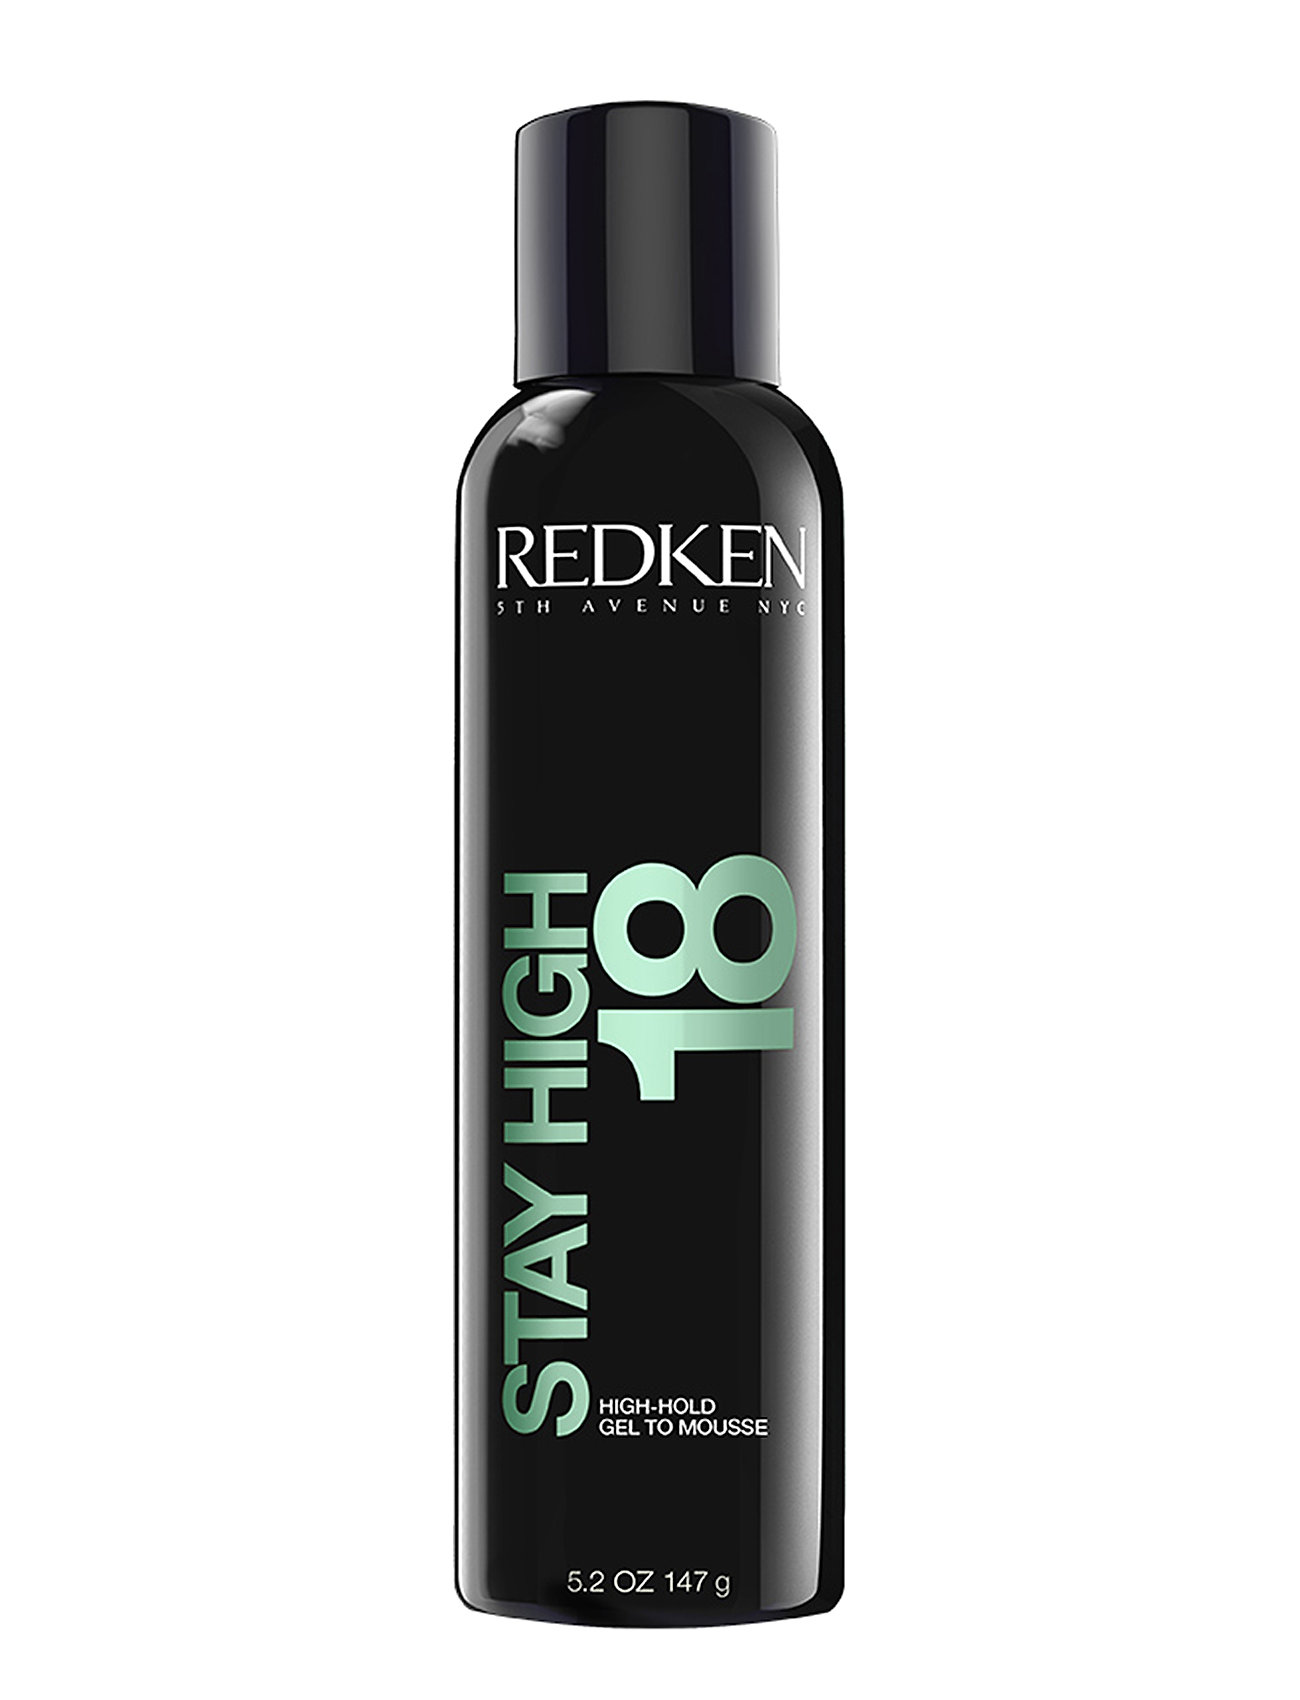 Redken Volumize Stay High 18 - CLEAR